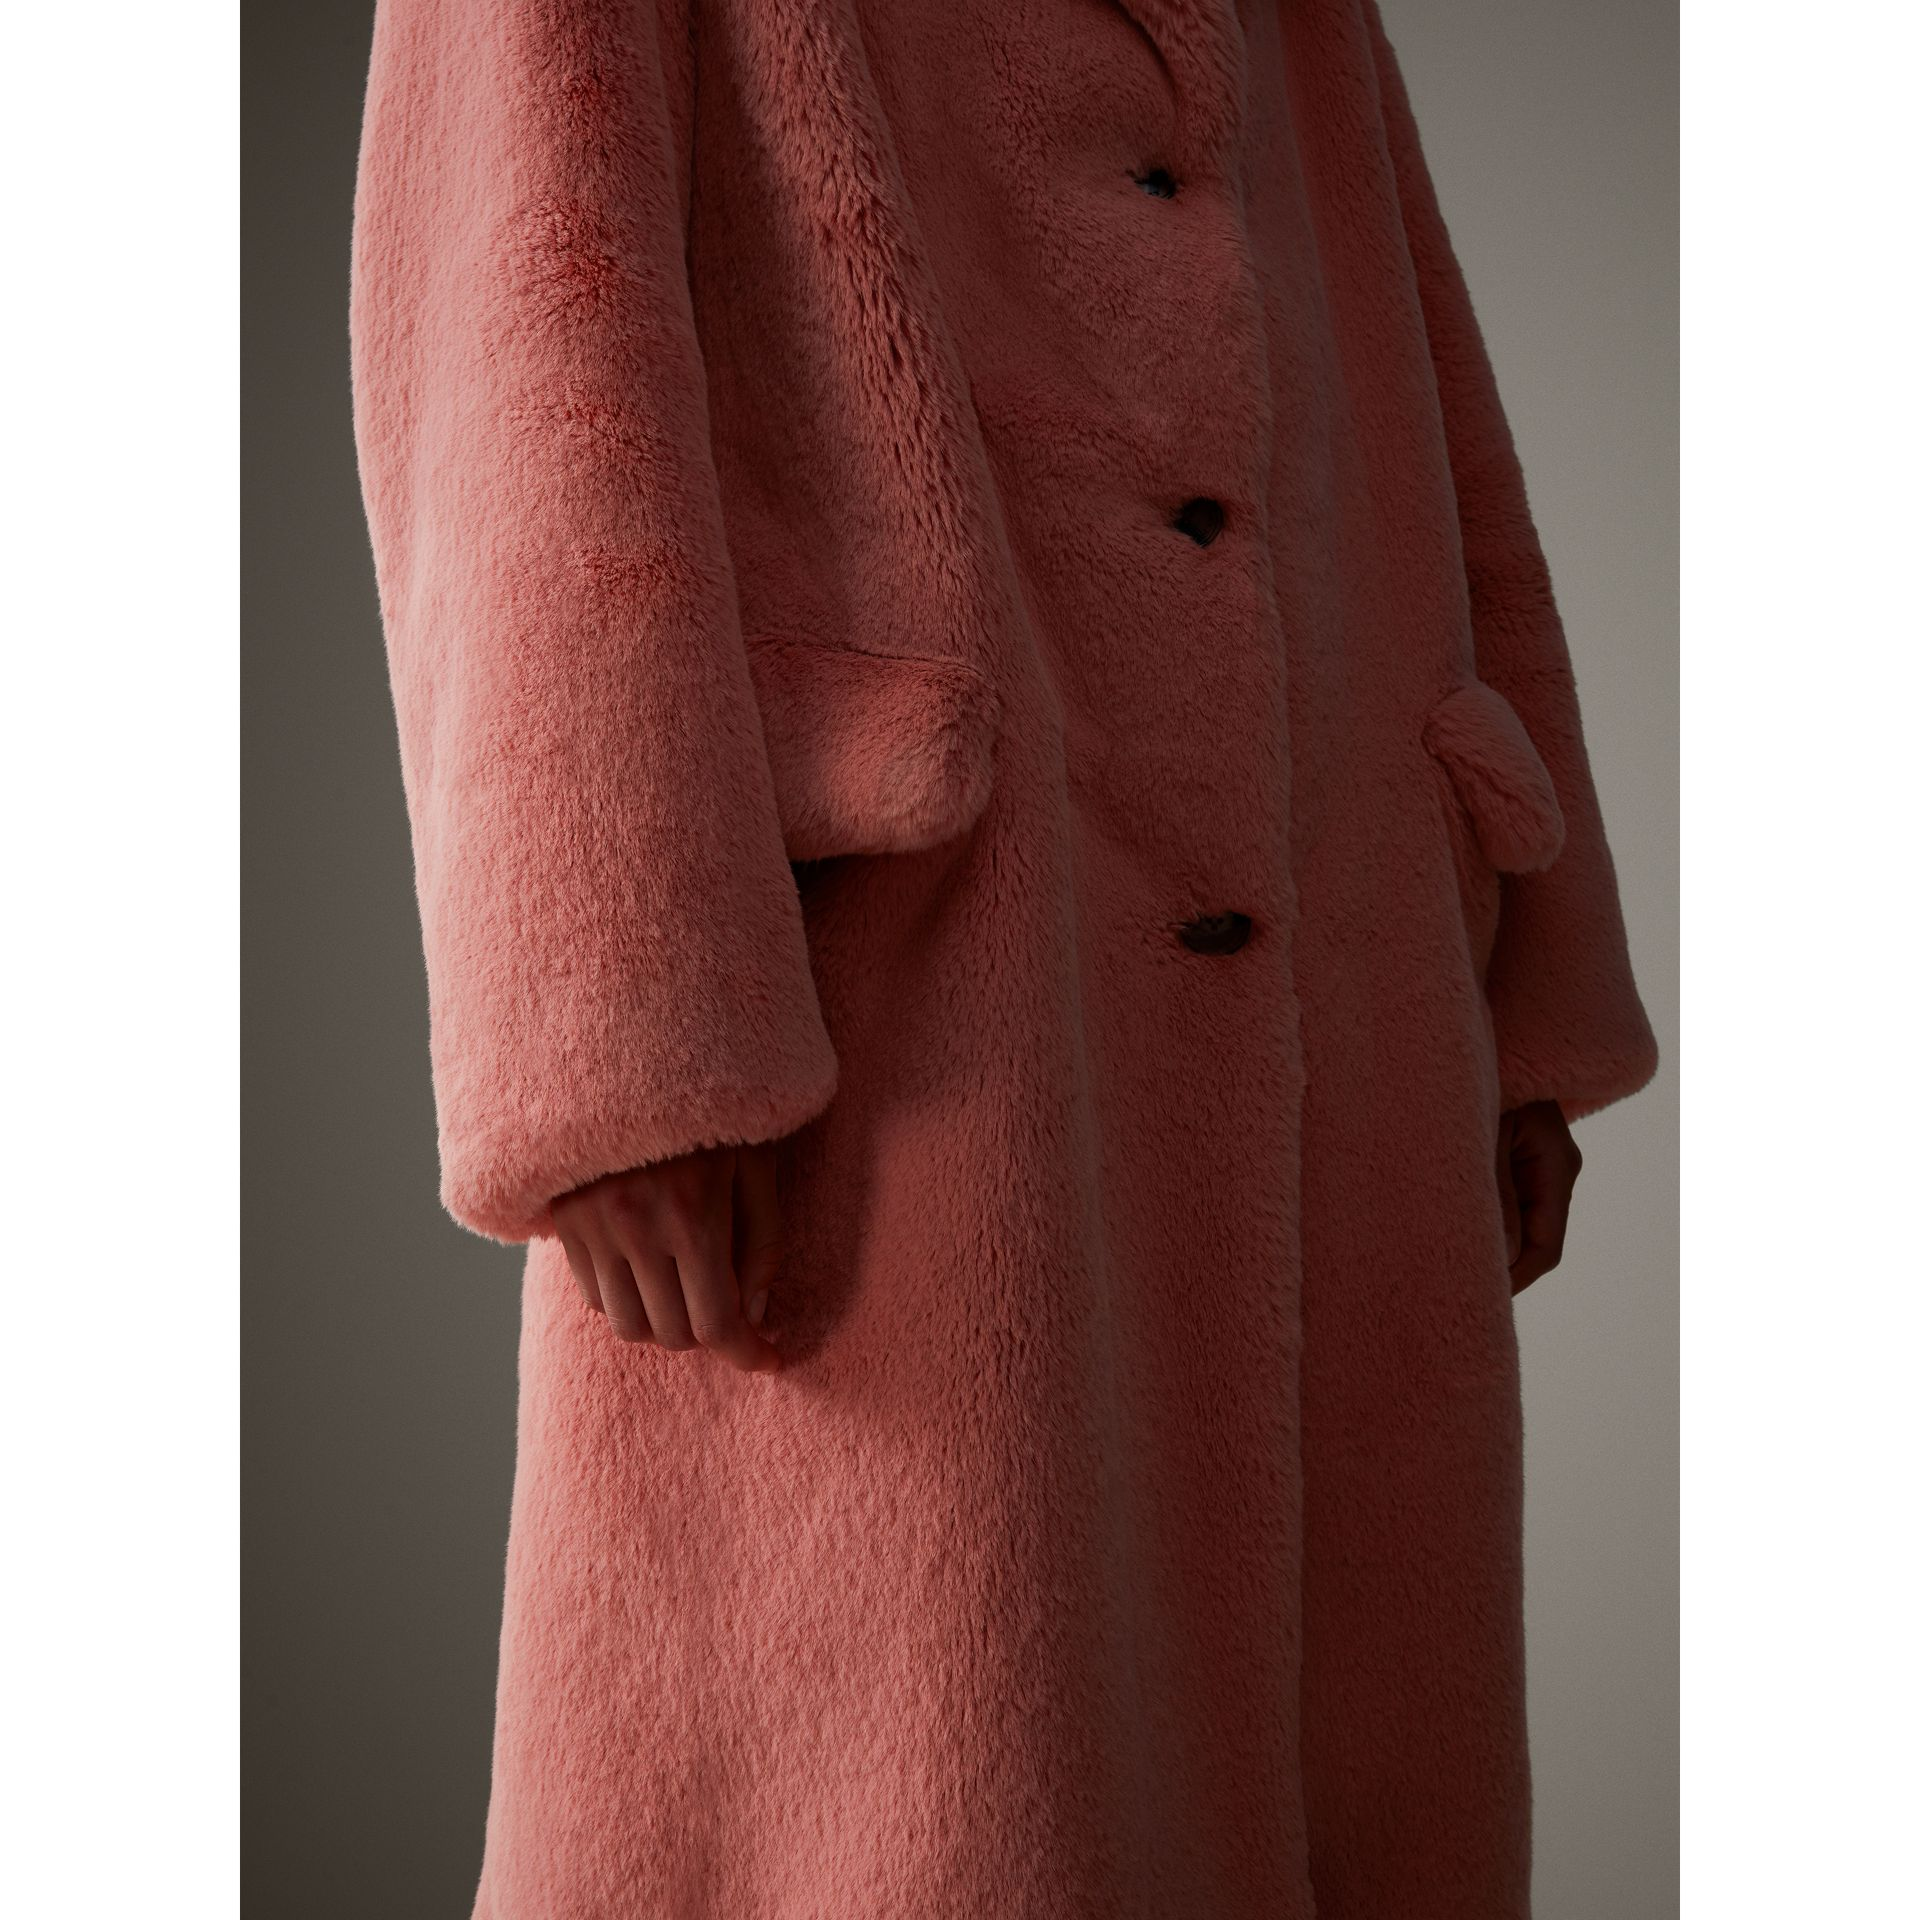 Manteau en fausse fourrure à boutonnage simple (Rose Pâle) - Femme | Burberry - photo de la galerie 5